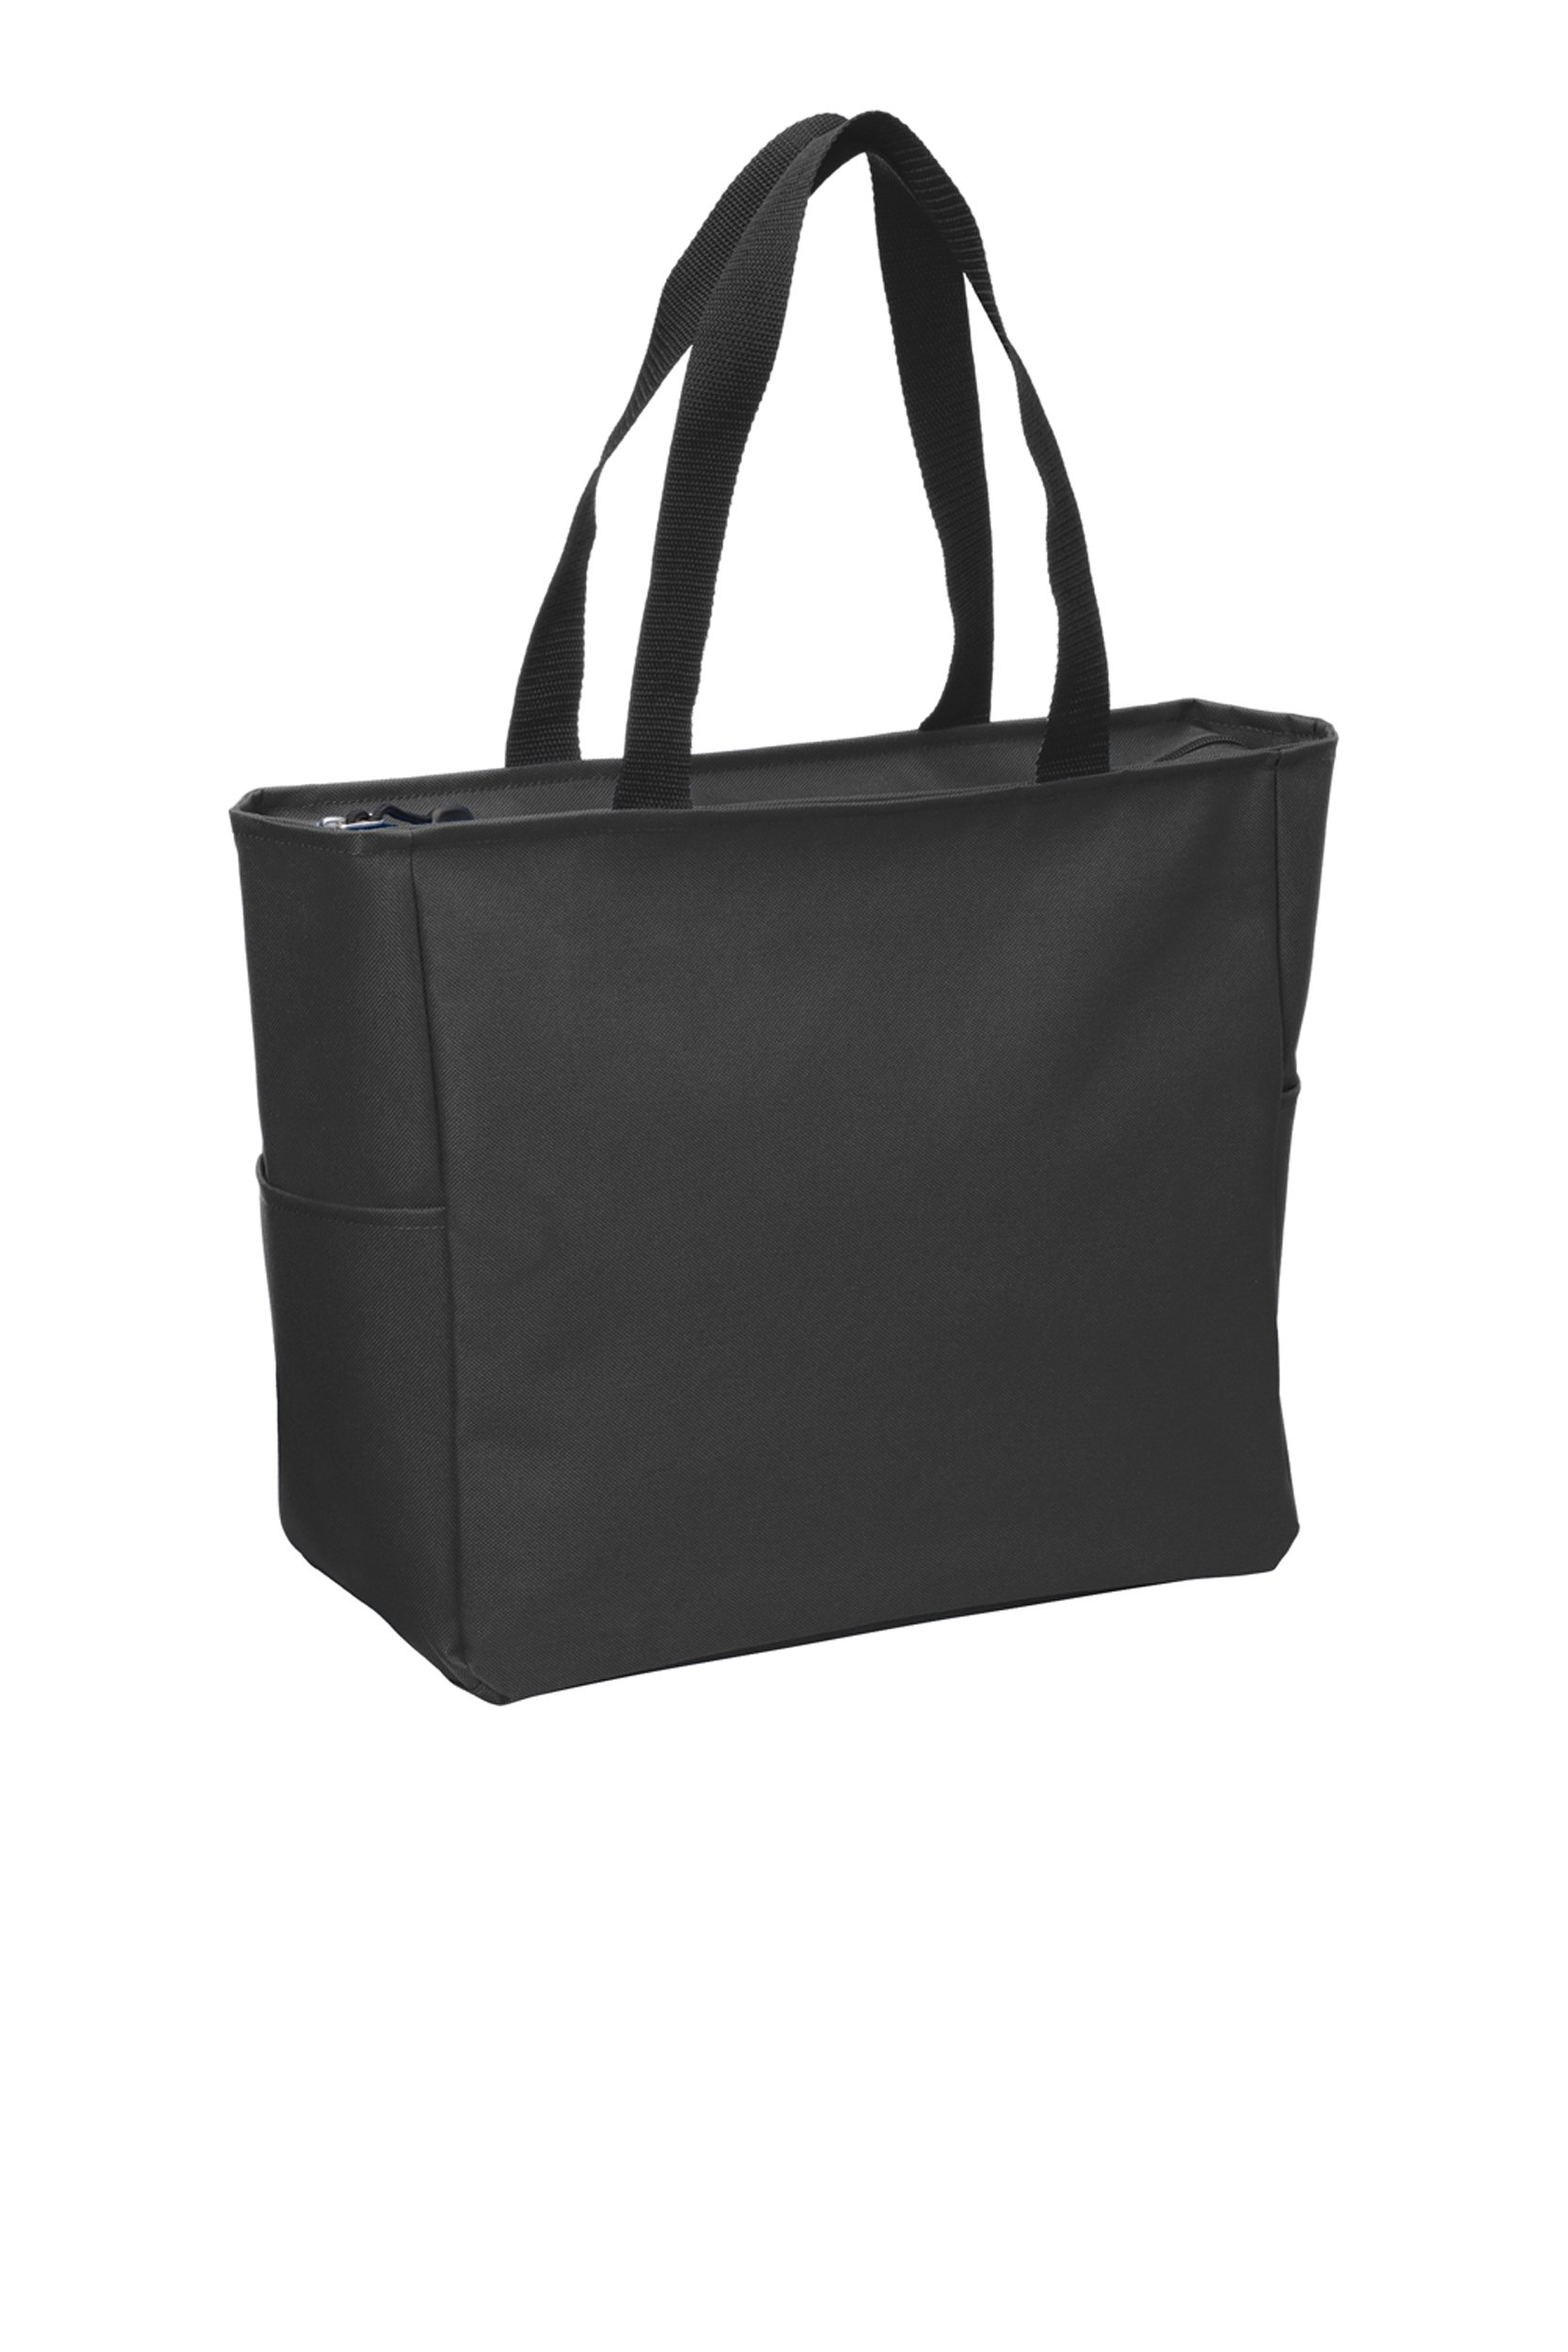 Essential Zip Tote Polyester Canvas Tote Bag with Zipper Top Closure and Two end pockets (1, Black)